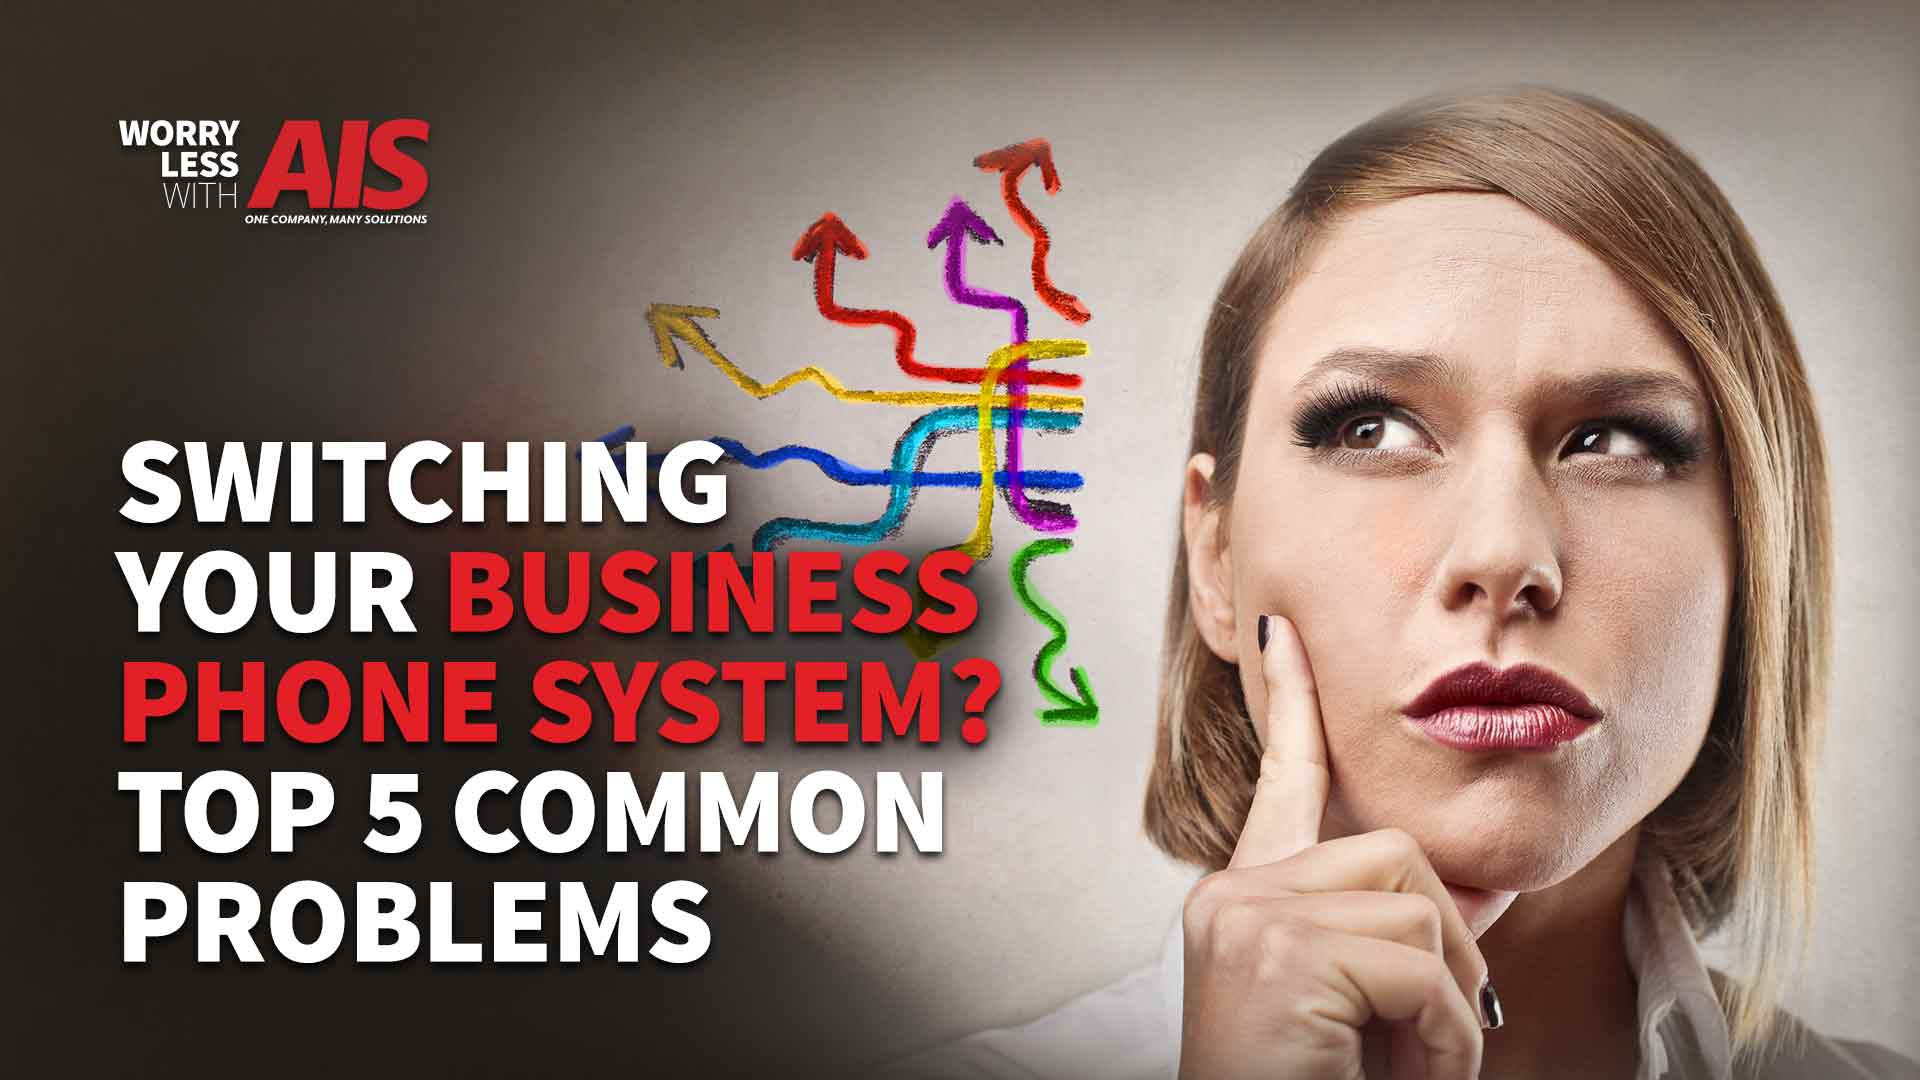 switching-business-phone-system-top-5-common-problems-v2